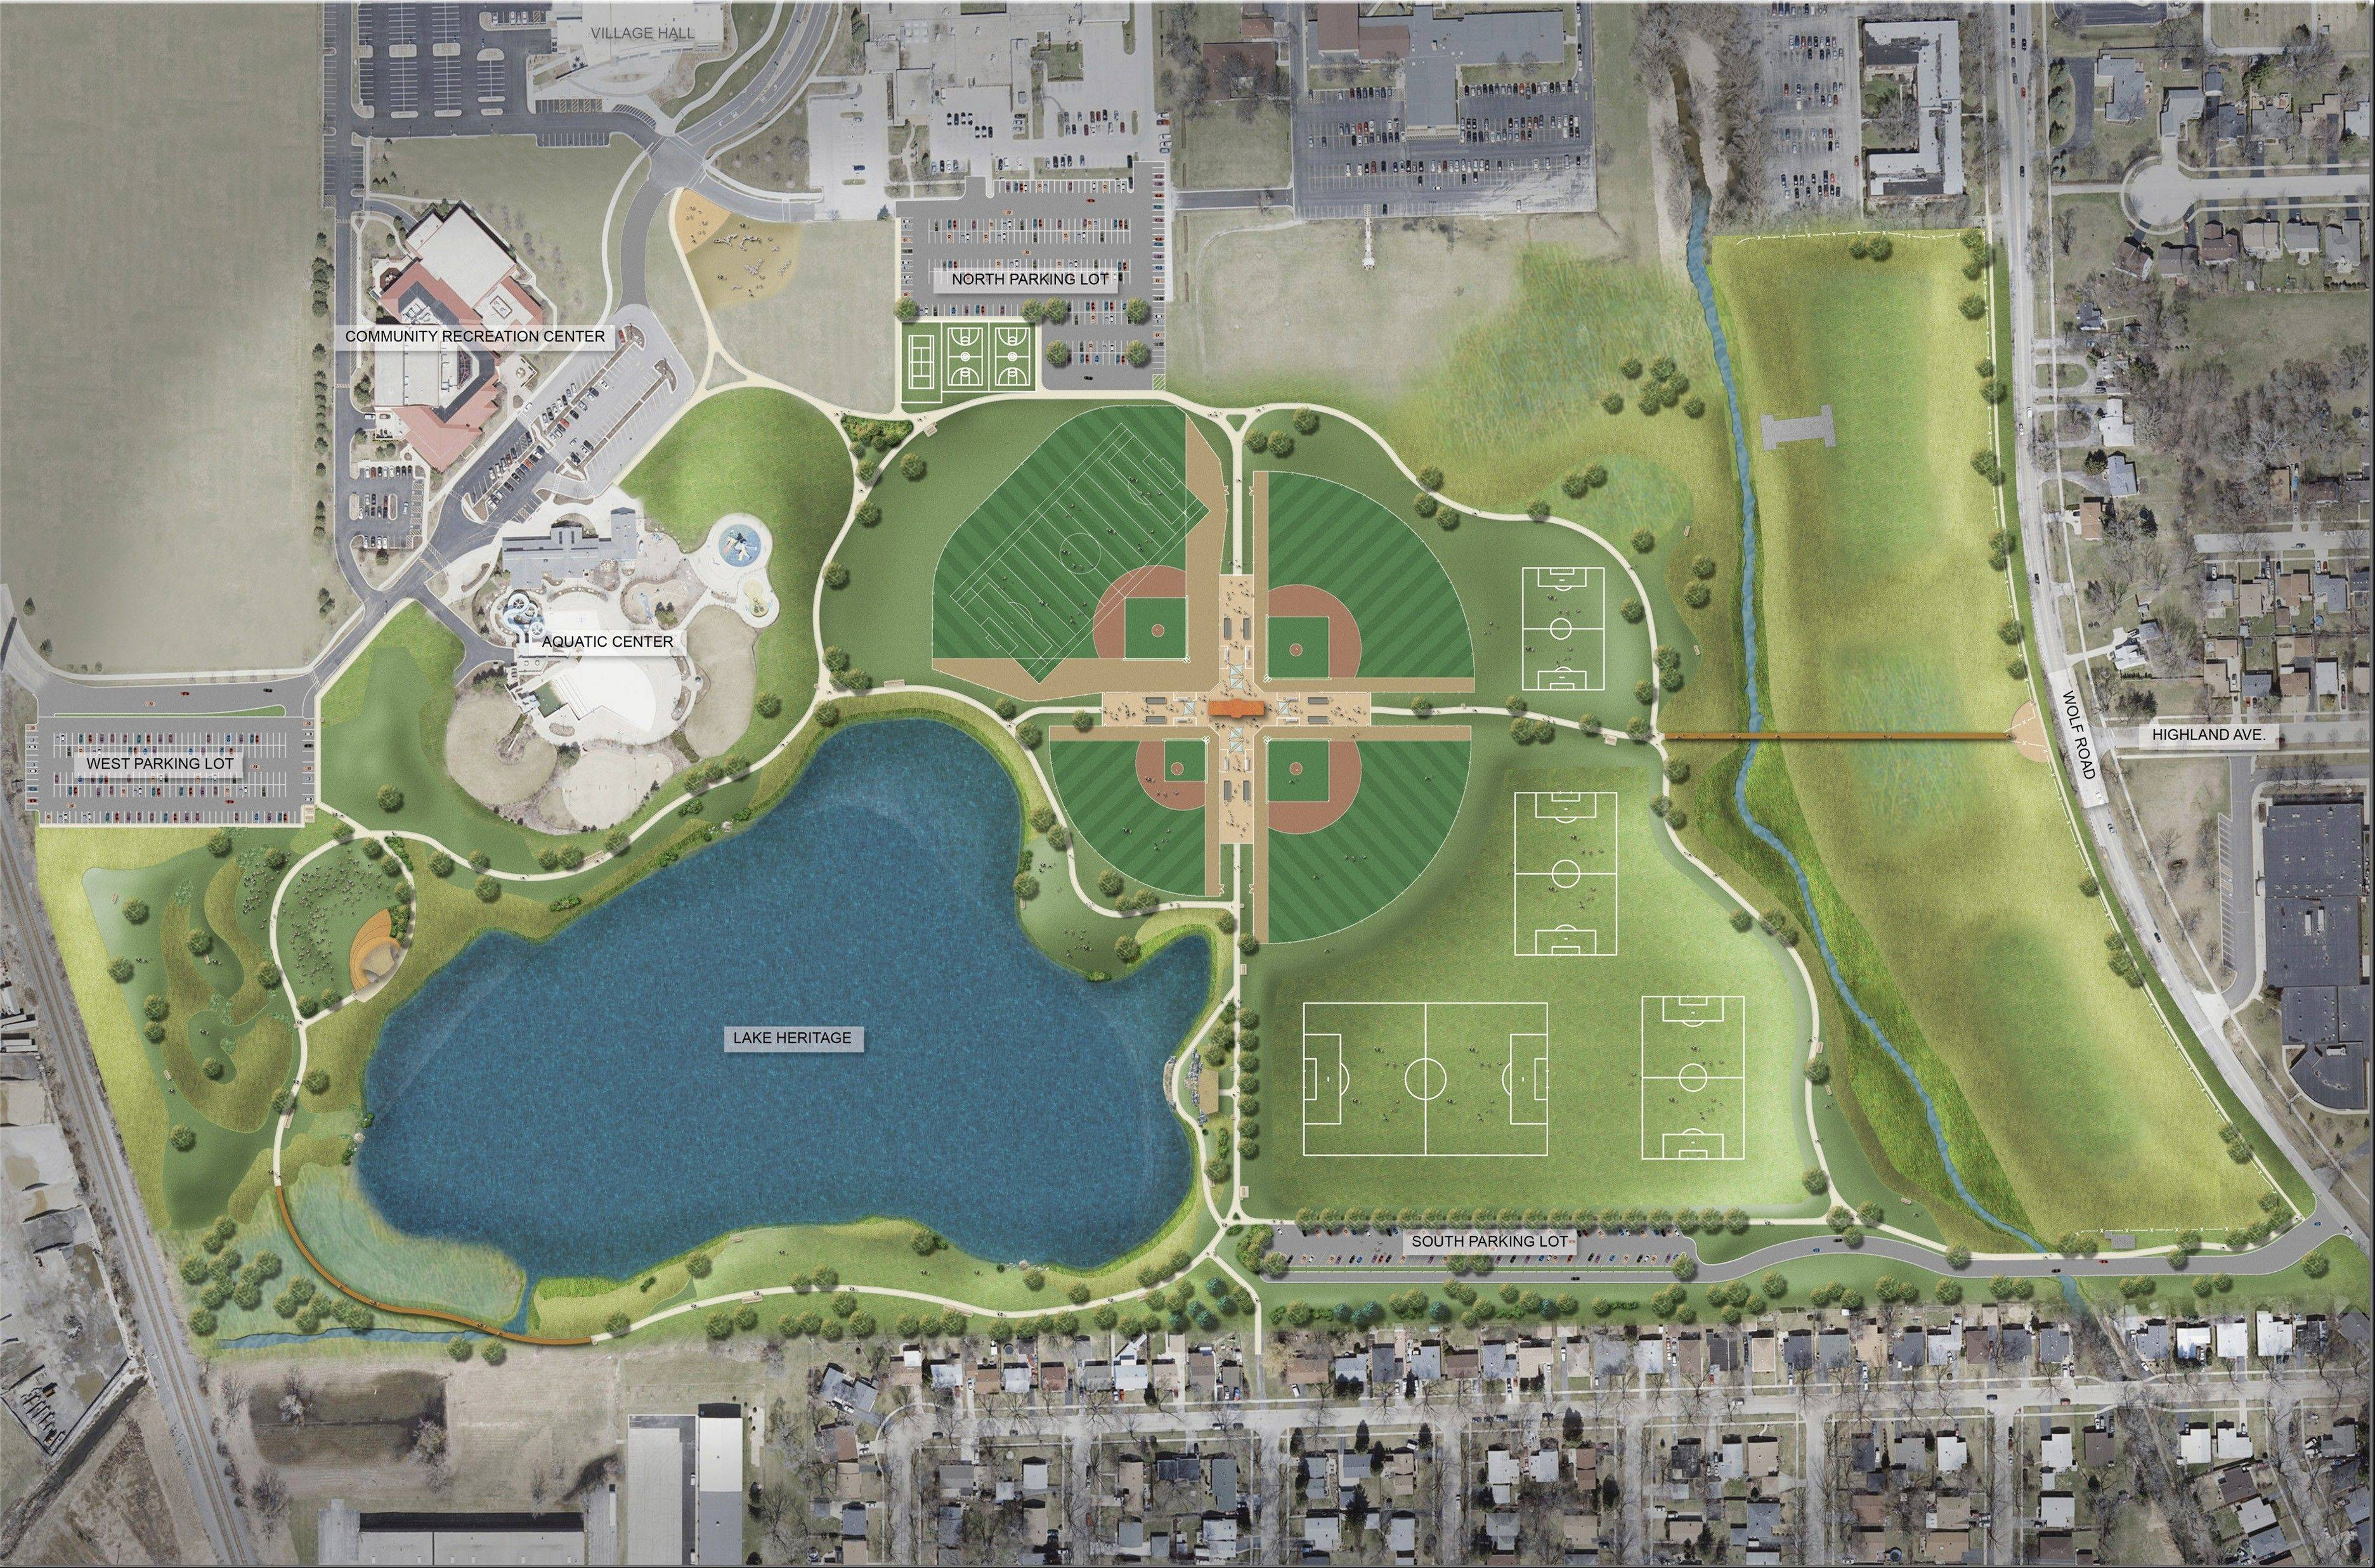 The blueprint for Heritage Park renovations.